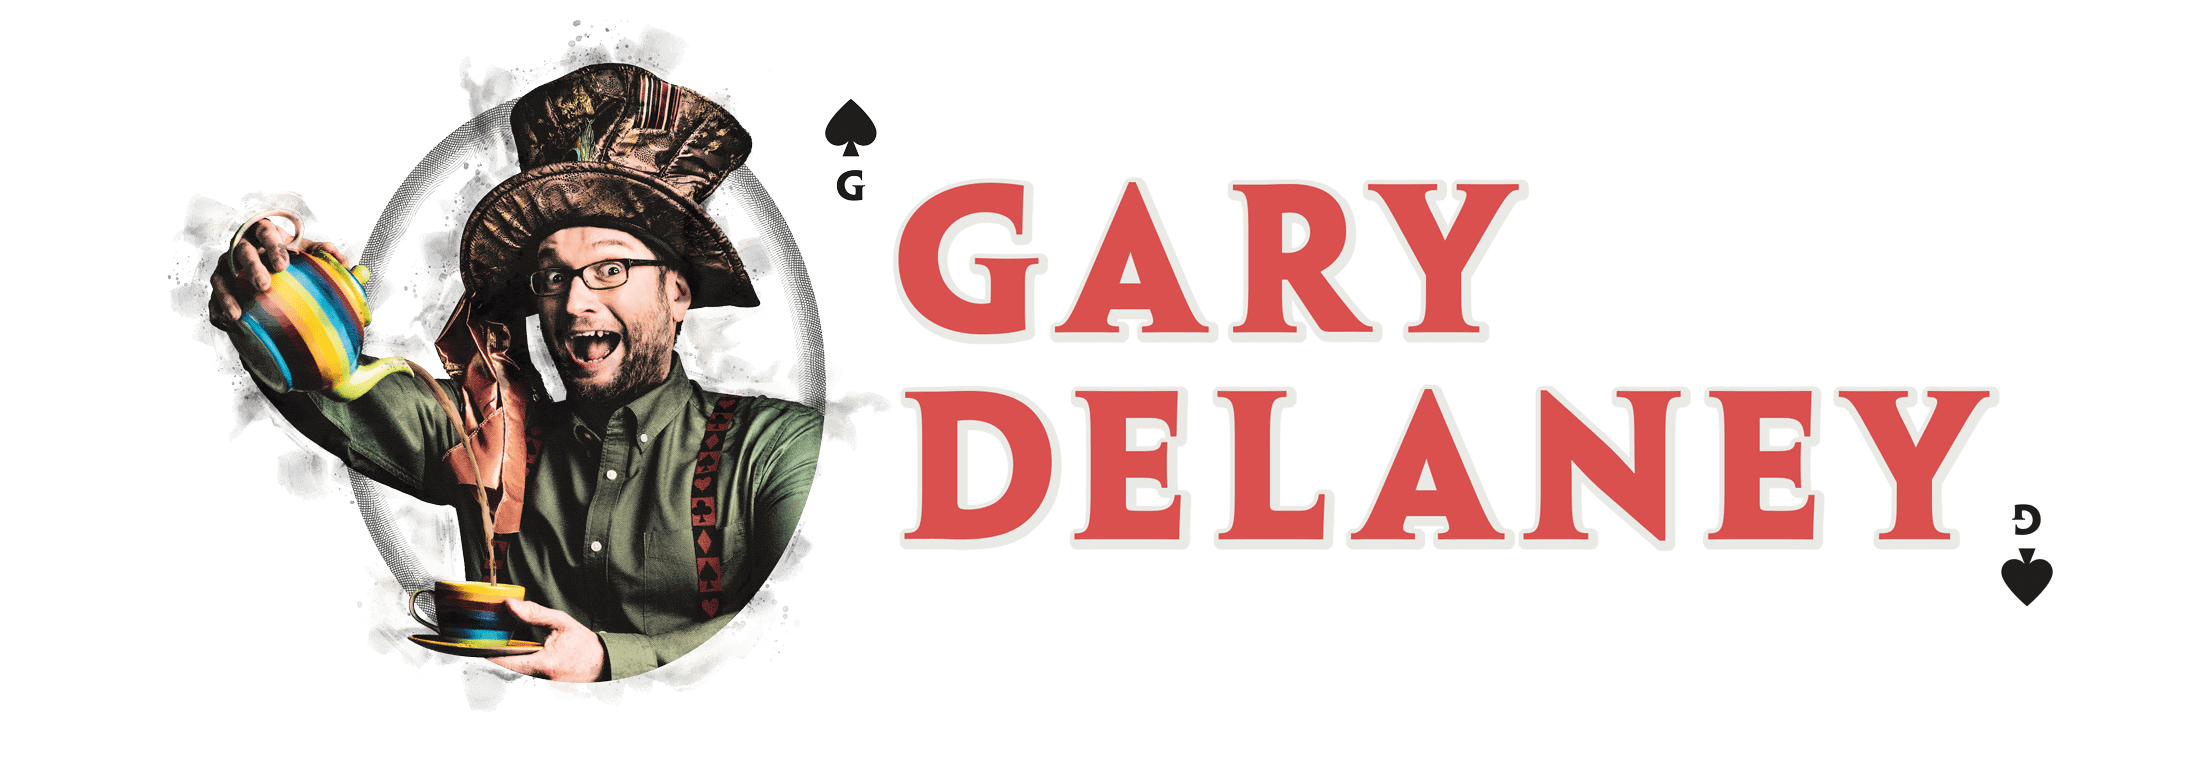 Gary Delaney - Stand Up Comedian